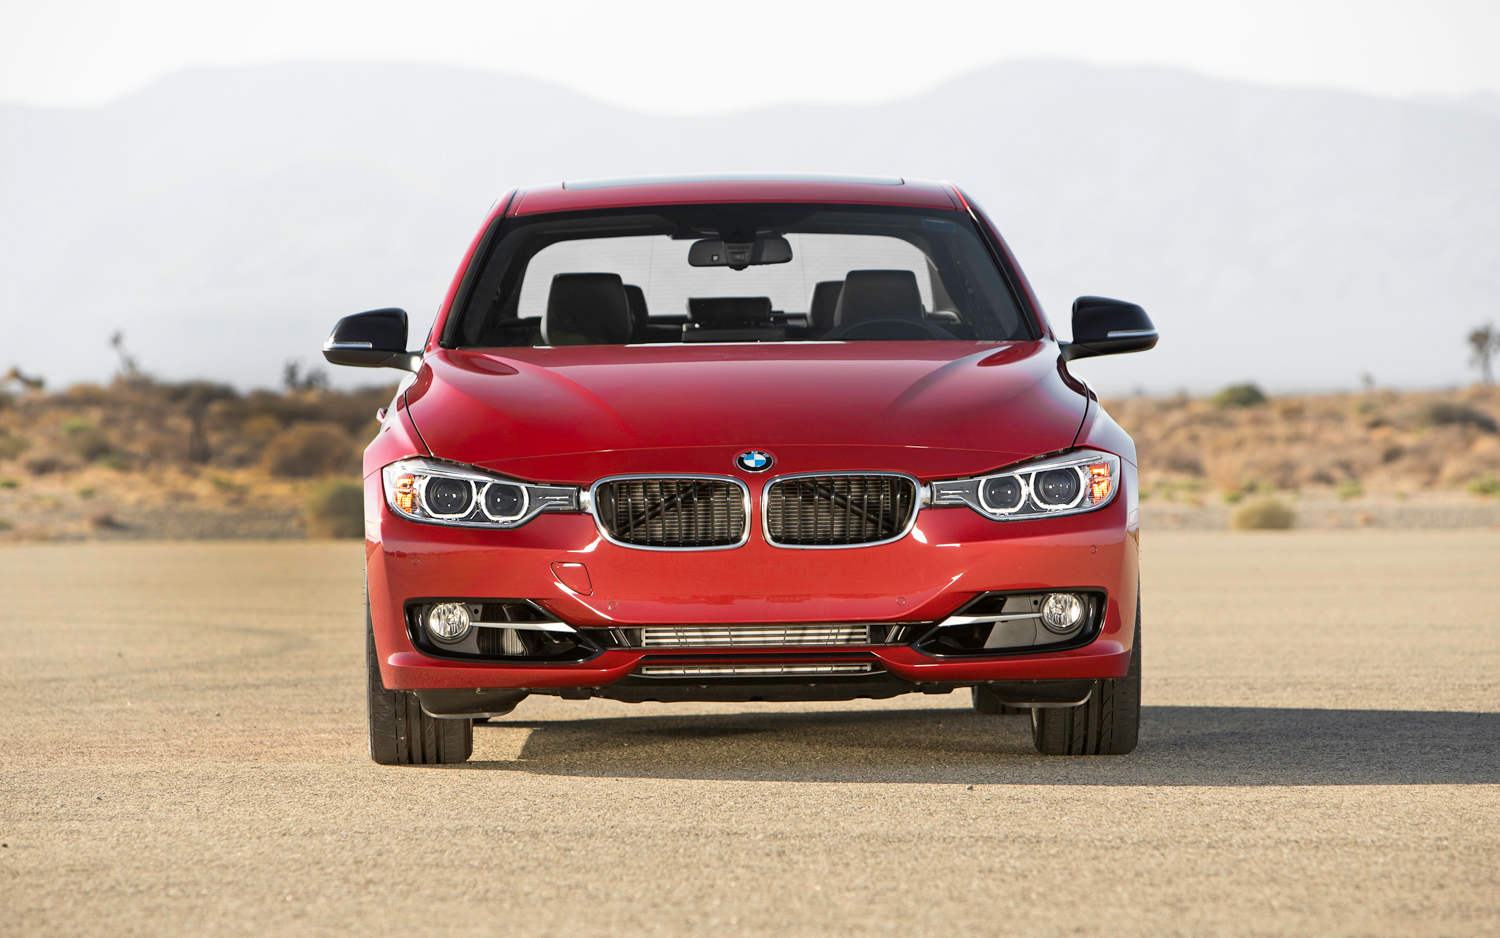 Recalled: 76,191 BMW 3 Series, 5 Series, X1, Z4 Models for Brake Issue